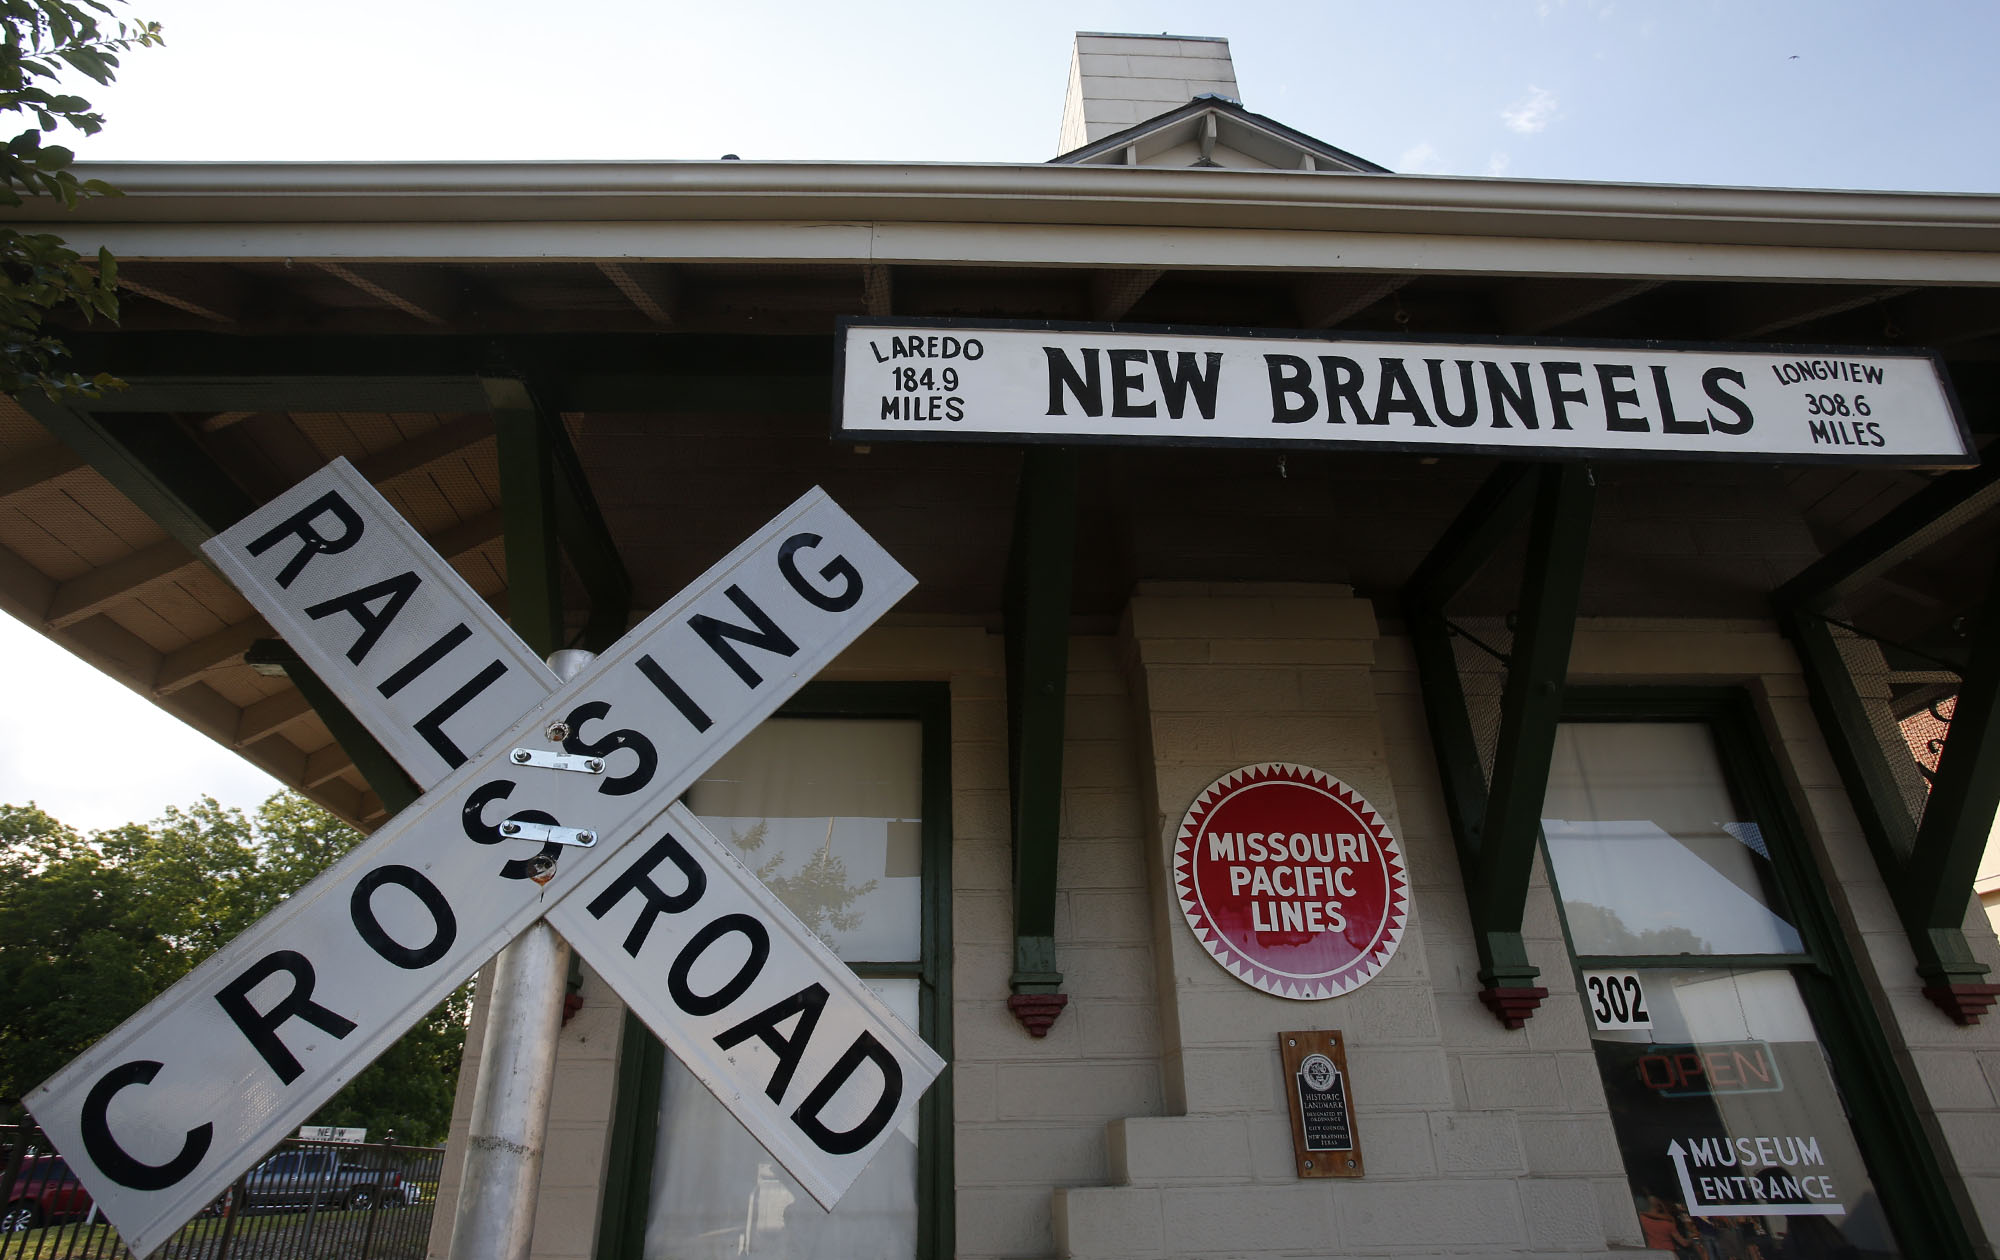 Angry New Braunfels residents showed up to a city council meeting. Many left even angrier.